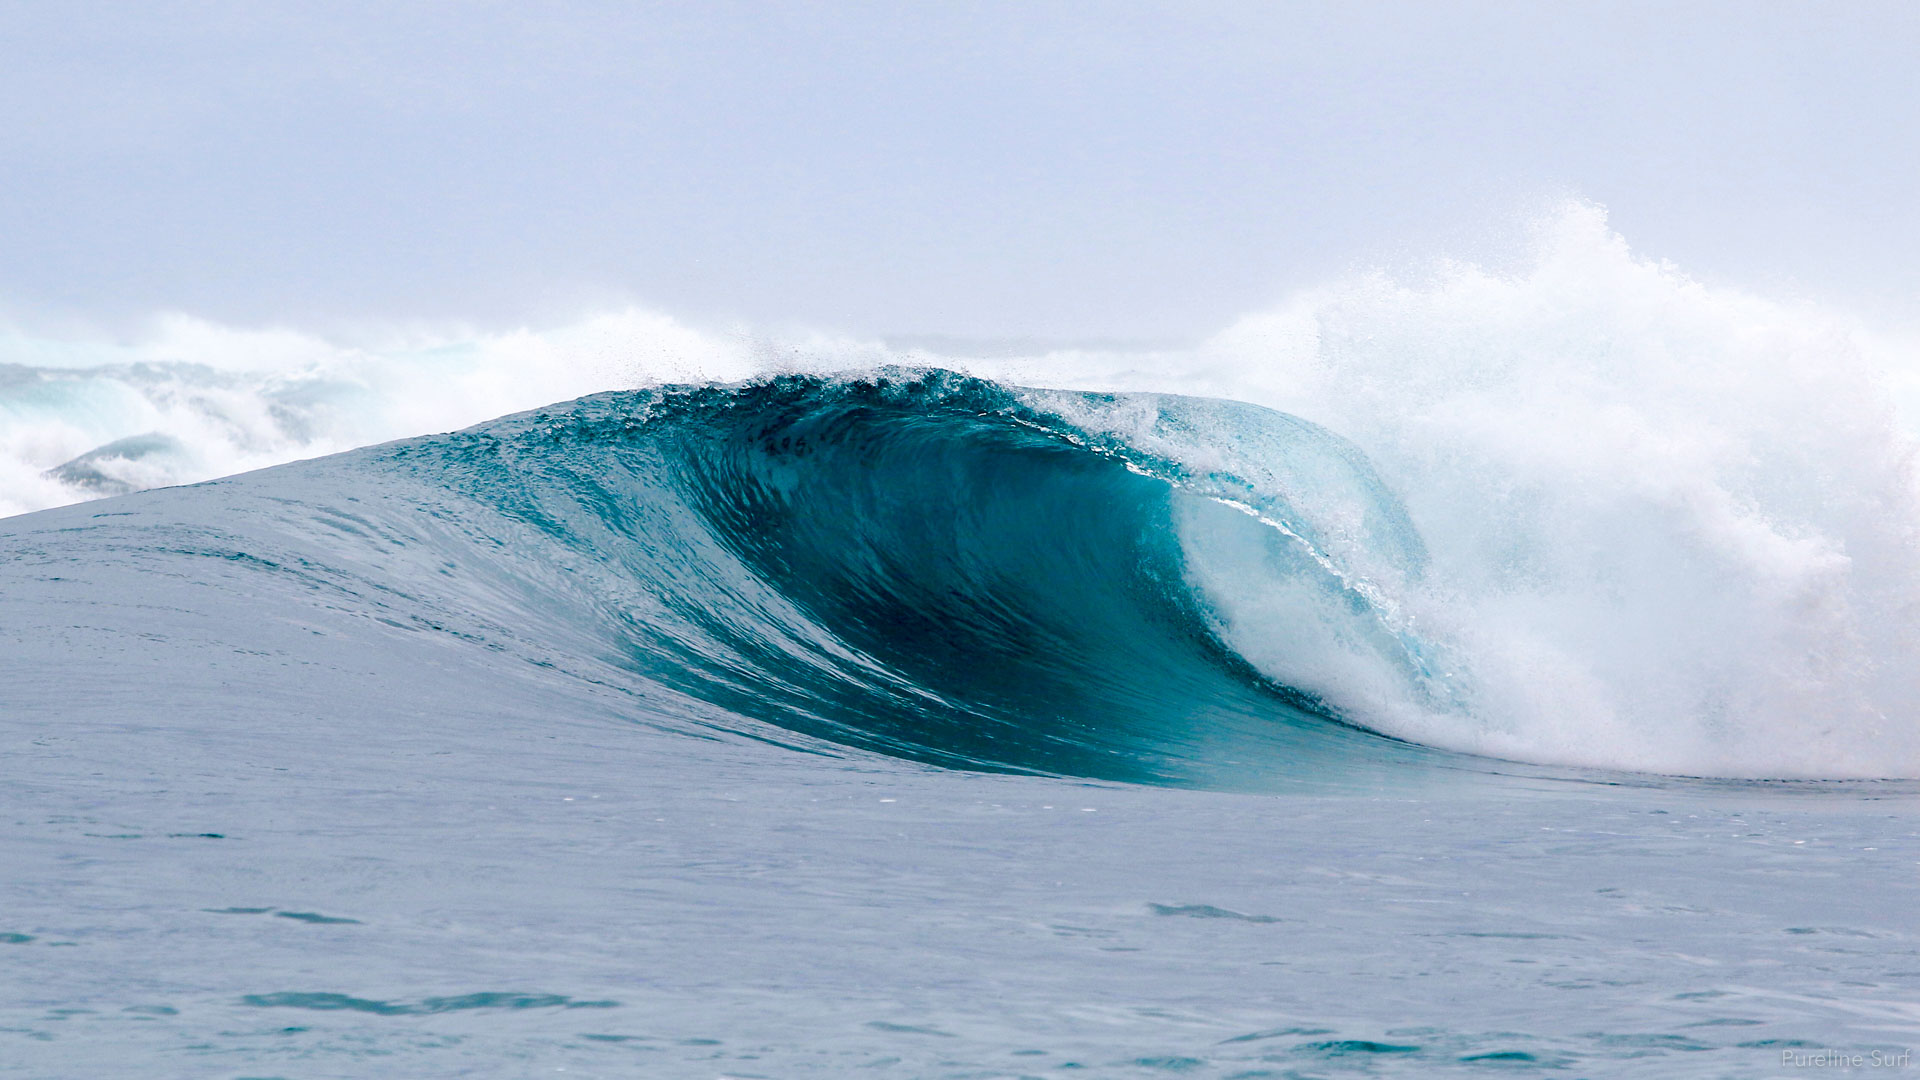 Perfect right in Indonesia. Our coaching style at Pureline Surf aims to give you confidence in bigger surf.